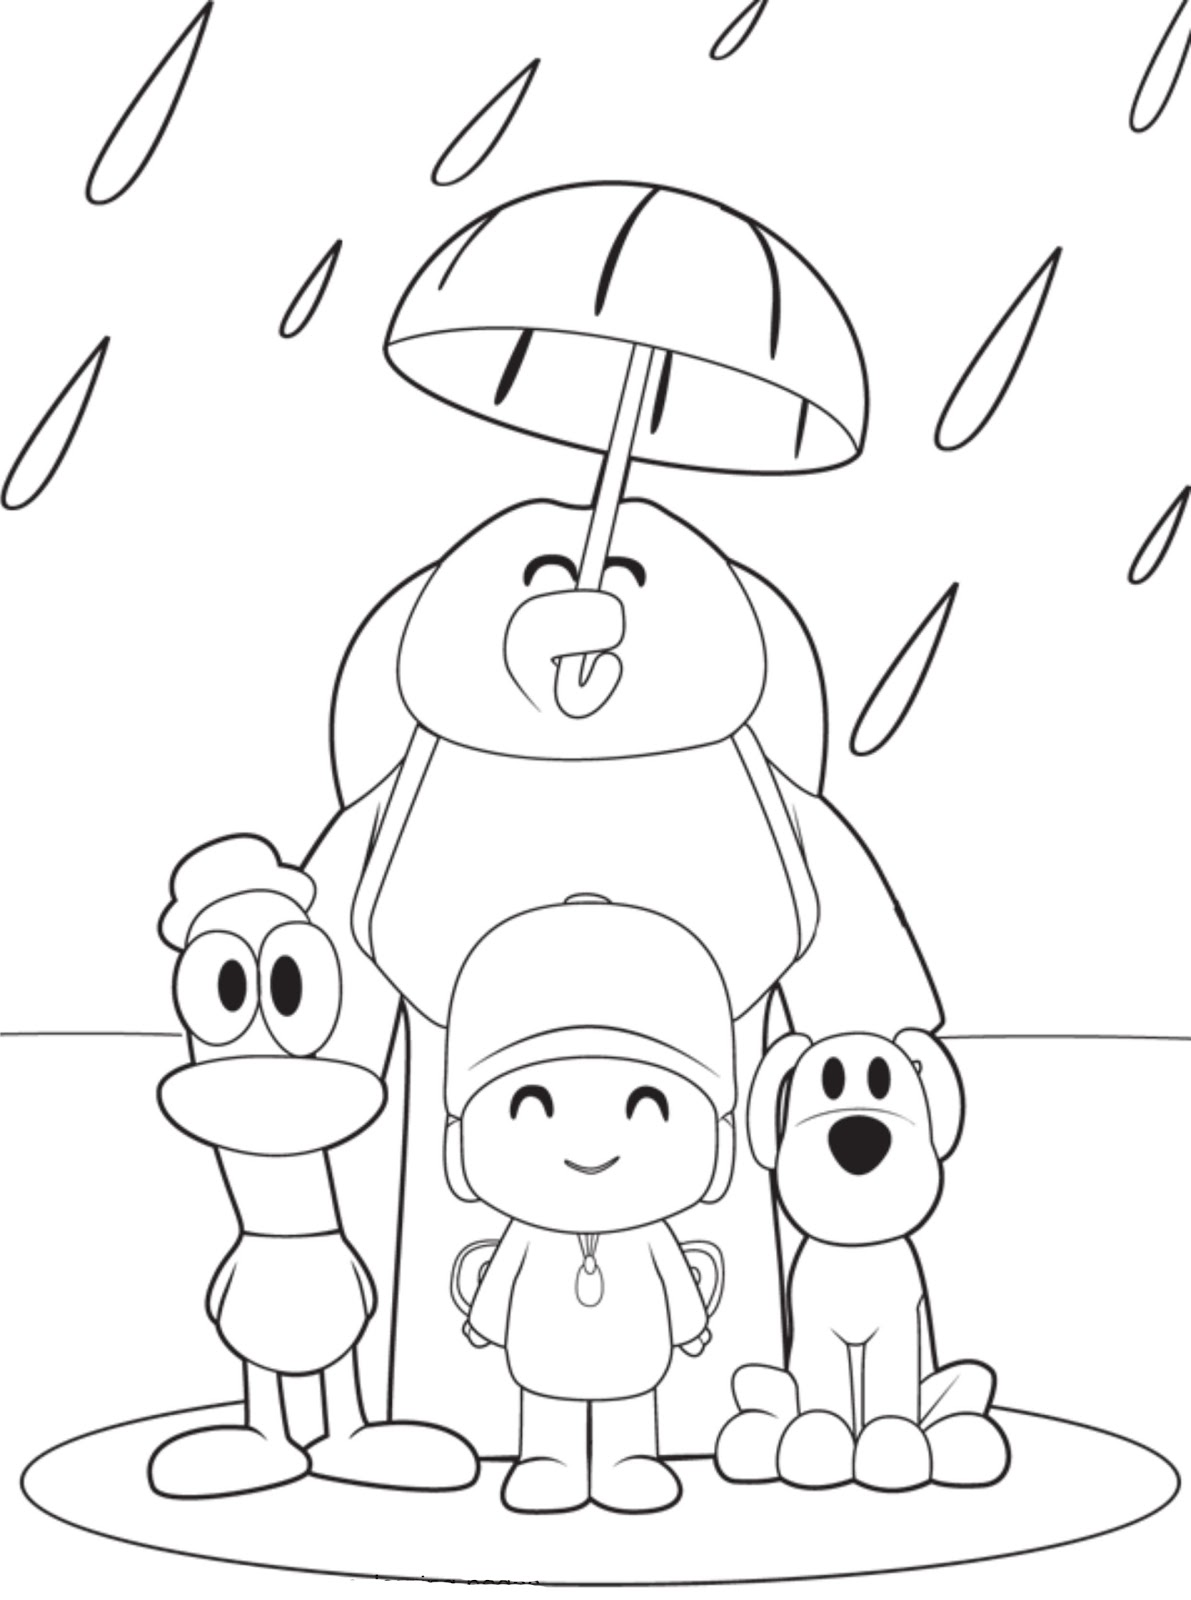 Pocoyo Coloring Pages ~ Free Printable Coloring Pages